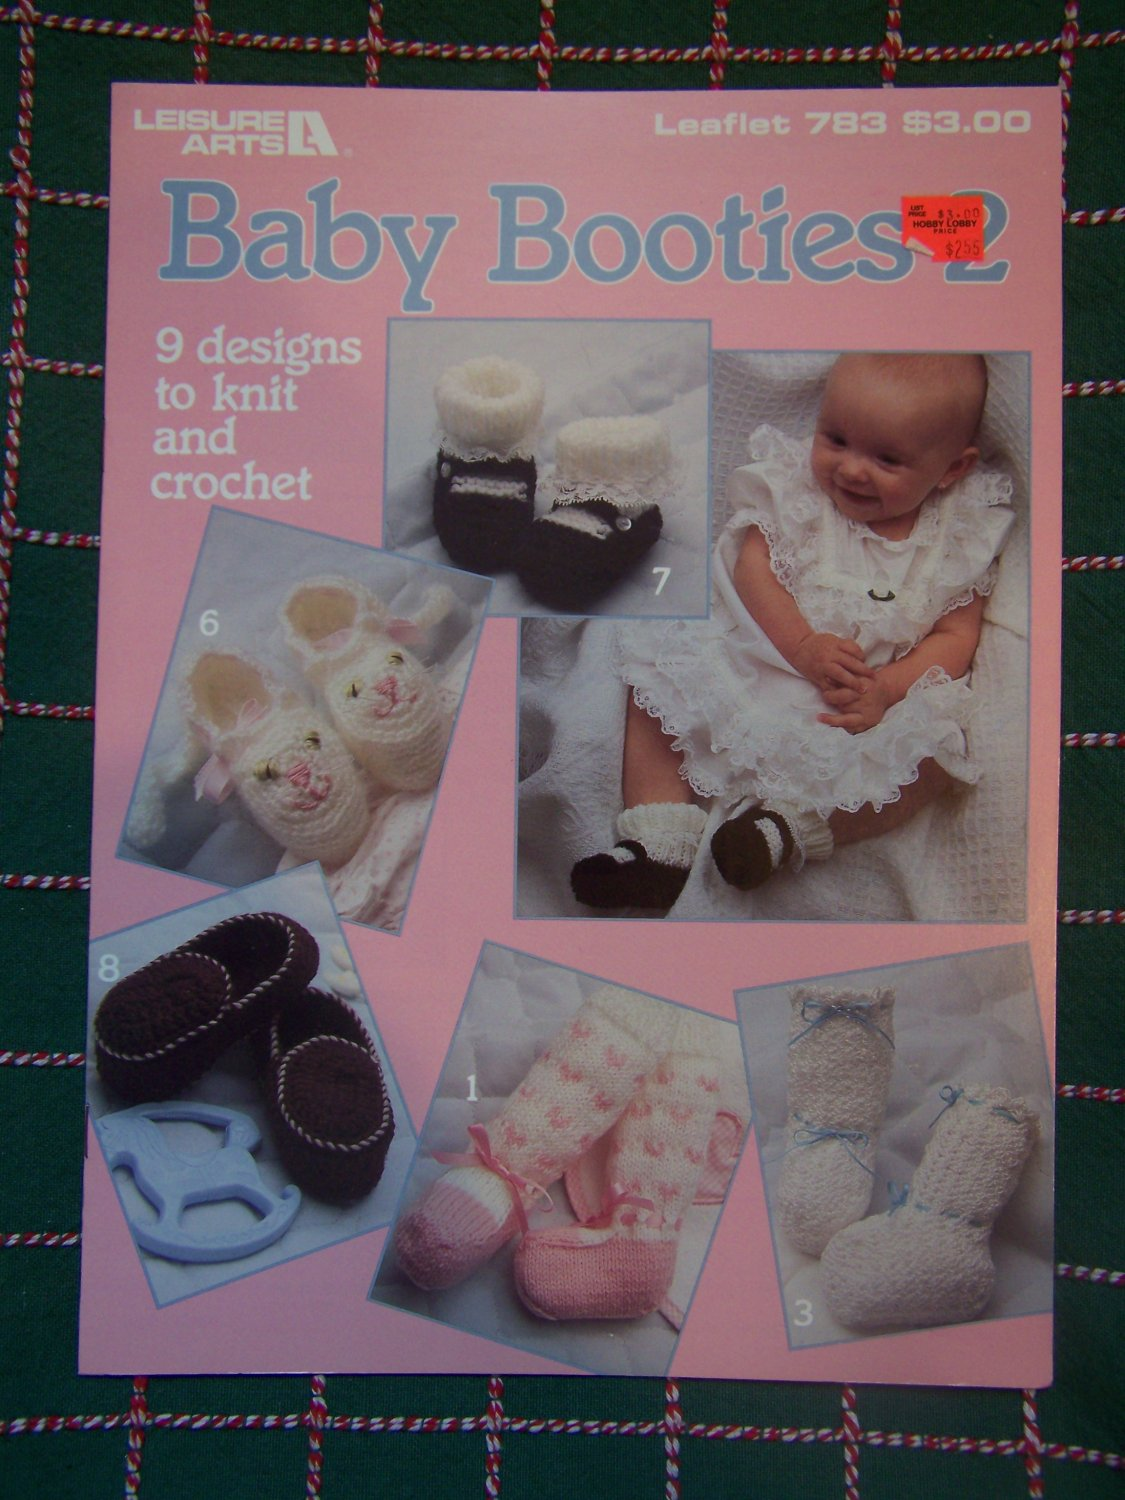 9 New Vintage Baby Booties 2 Knitting & Crochet Patterns 783